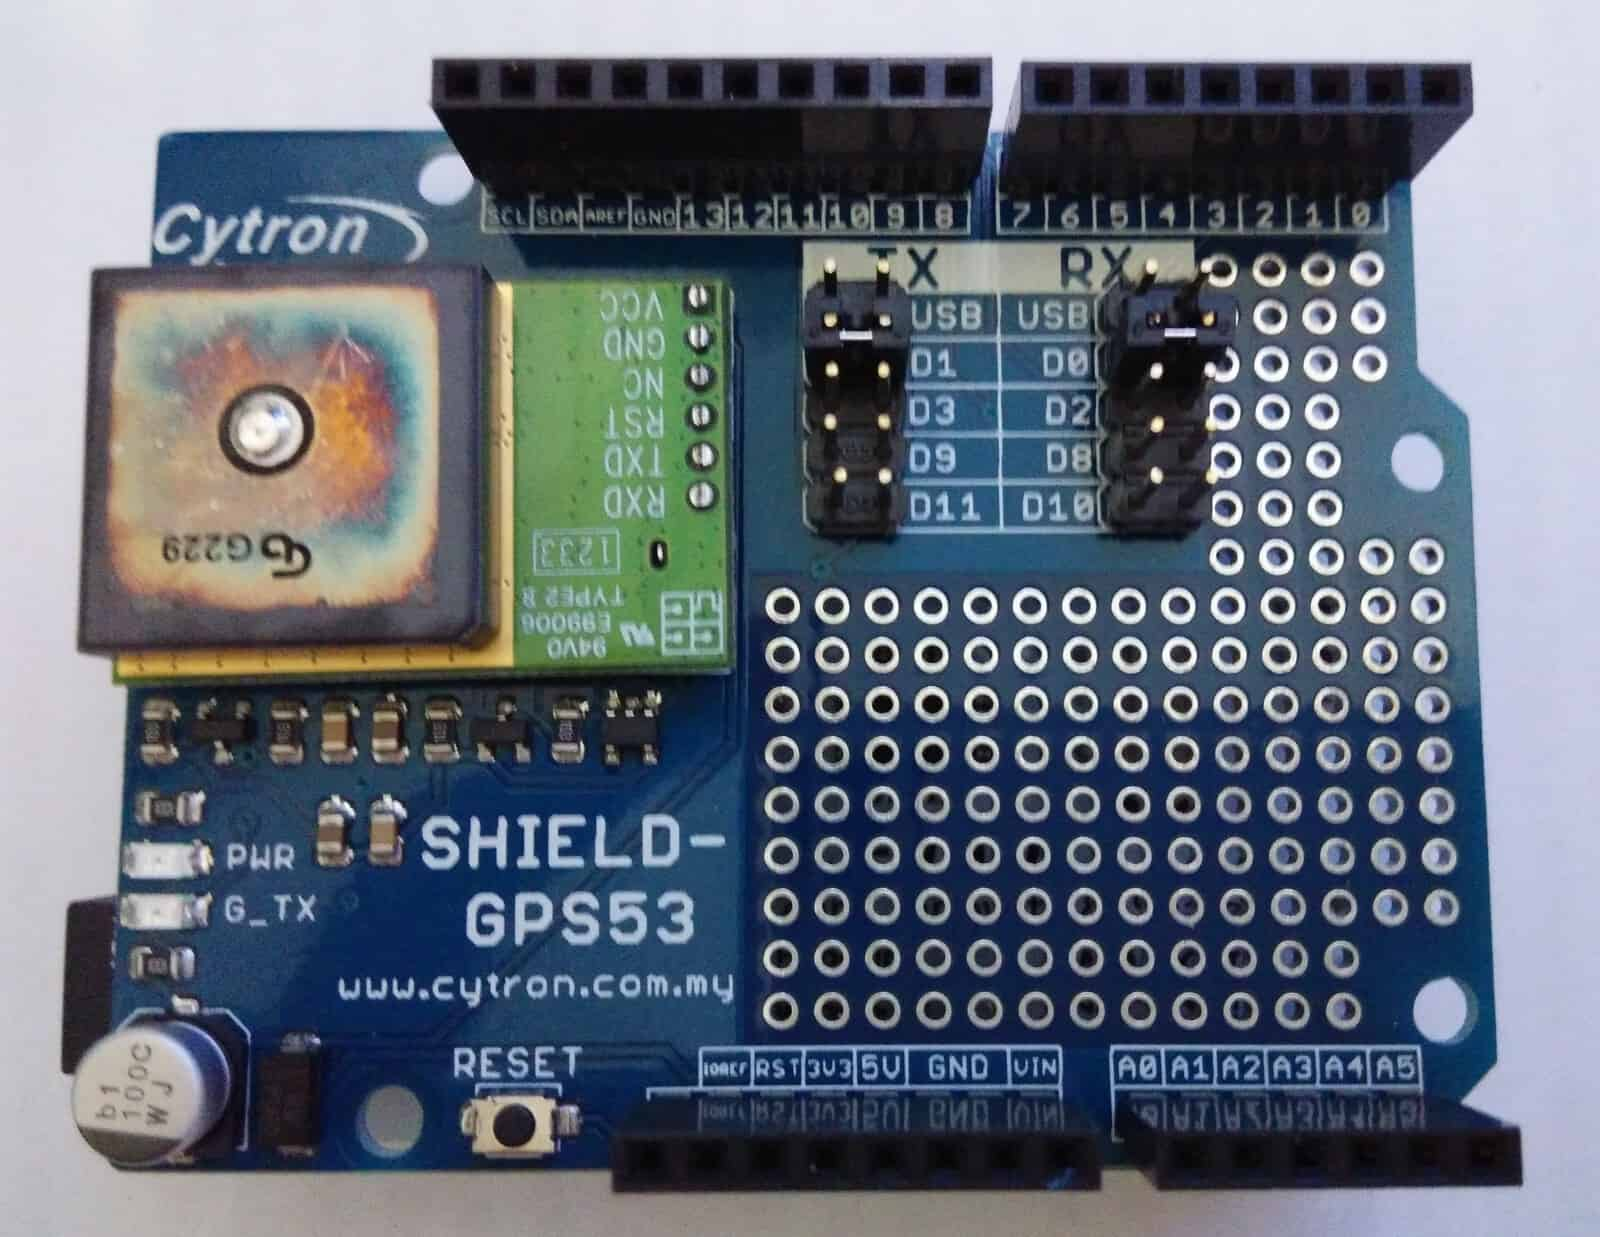 Getting Started With Arduino Leonardo Tutorial By Cytron Basic Electronics Tutorial2 How To Use Breadboard For Beginners Using Skm53 Gps Shield Ct Uno